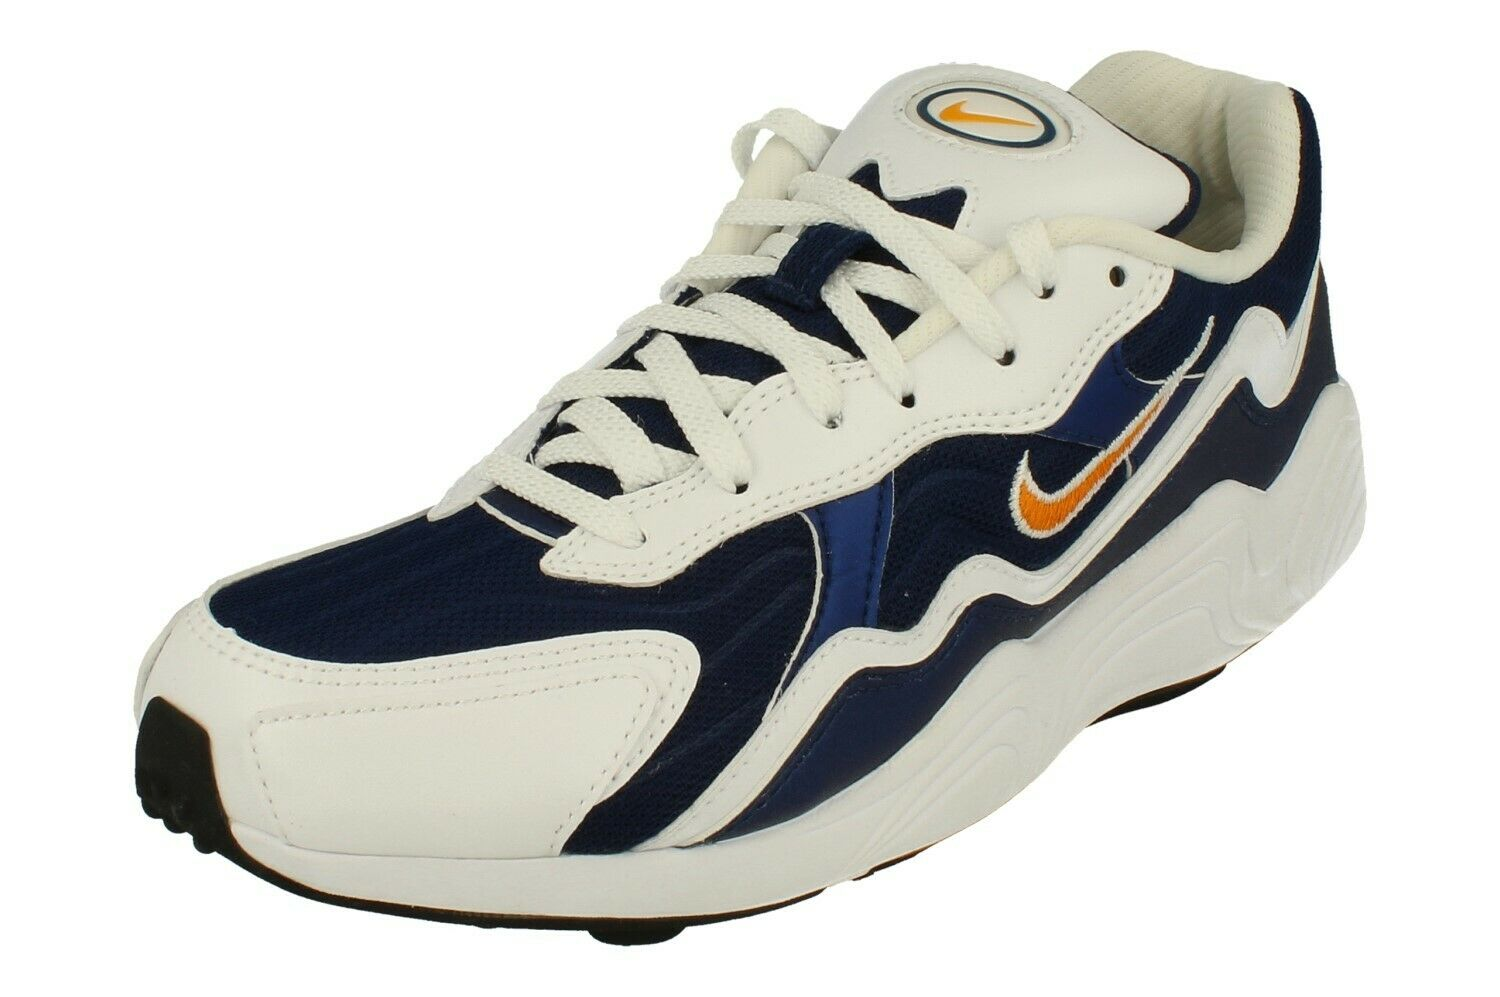 Nike Air Zoom Alpha Mens Running Trainers Bq8800 Turnschuhe schuhe 400